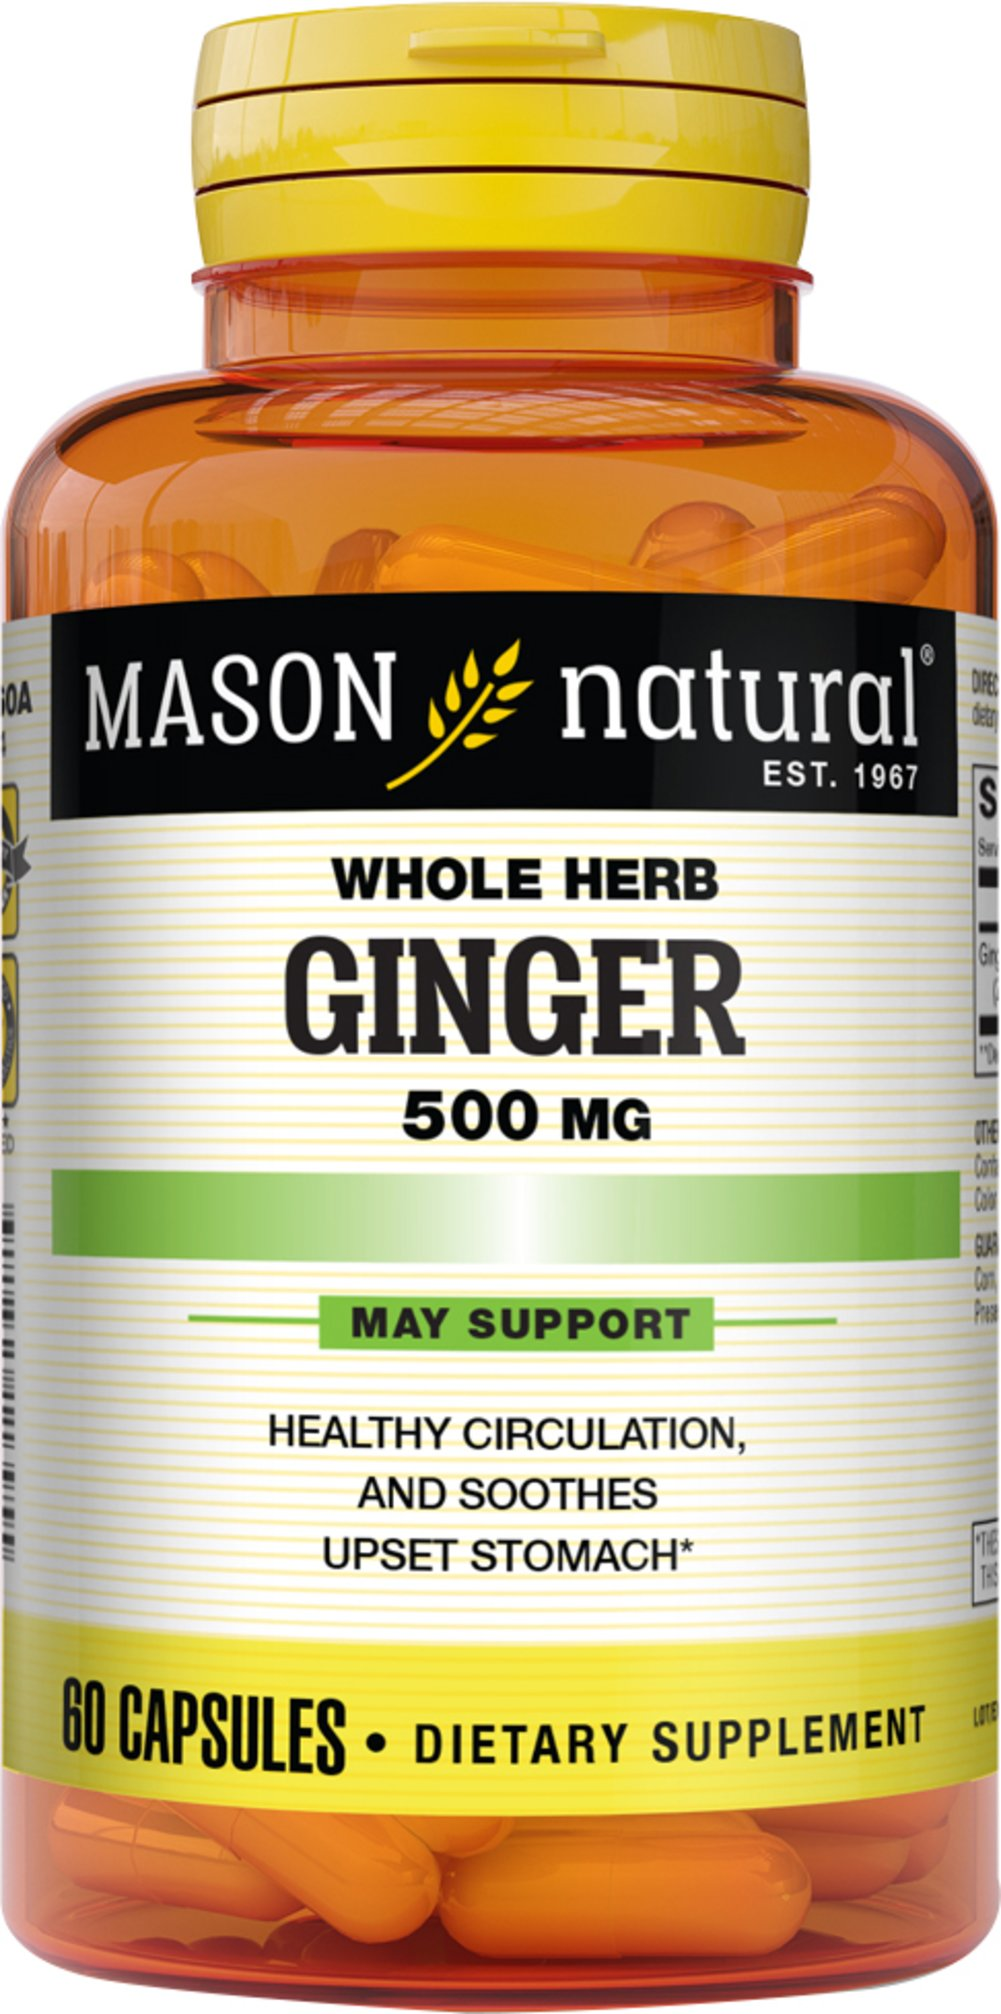 Ginger 500 mg <p><strong>From the Manufacturer's label:</strong></p><ul><li>Herbal Supplement</li><li>Promotes Healthy Circulation**</li><li>Soothes upset stomach & is Popular with Travelers**</li></ul><p>Manufactured for Mason Vitamins, Inc.</p><p></p><p></p><p><strong></strong></p><p></p> 60 Capsules 500 mg $4.29